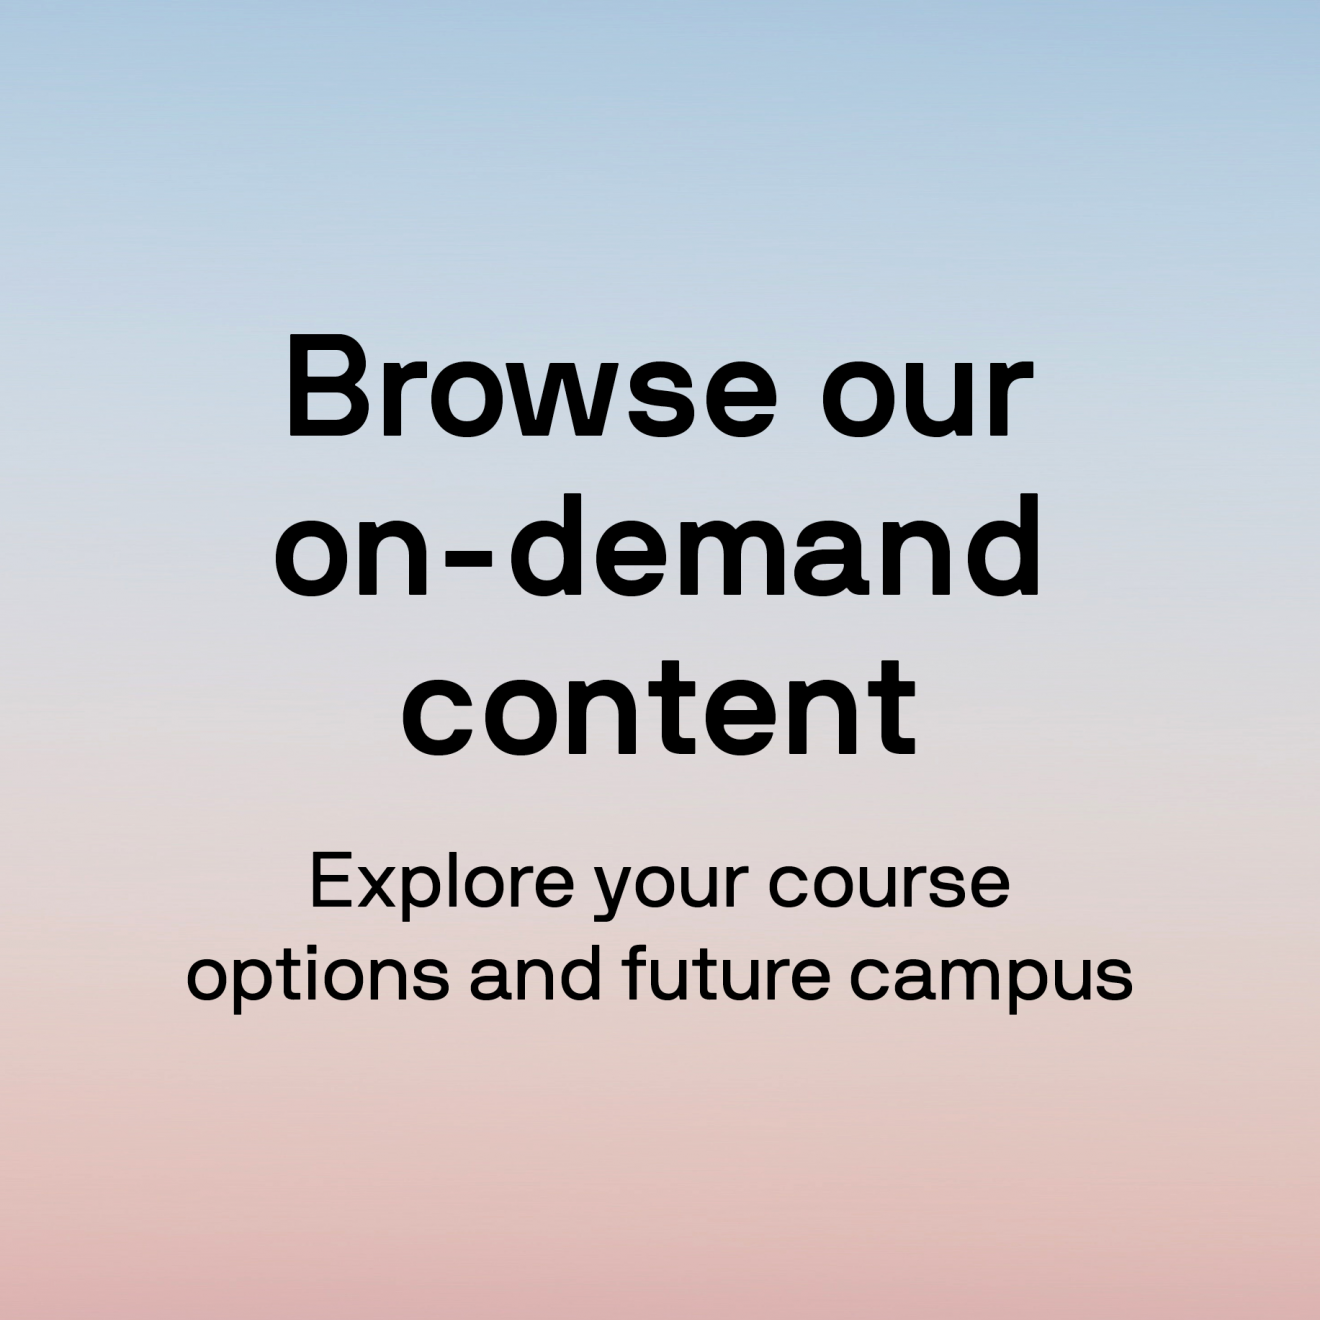 Browse our on-demand content Explore your course options and future campus